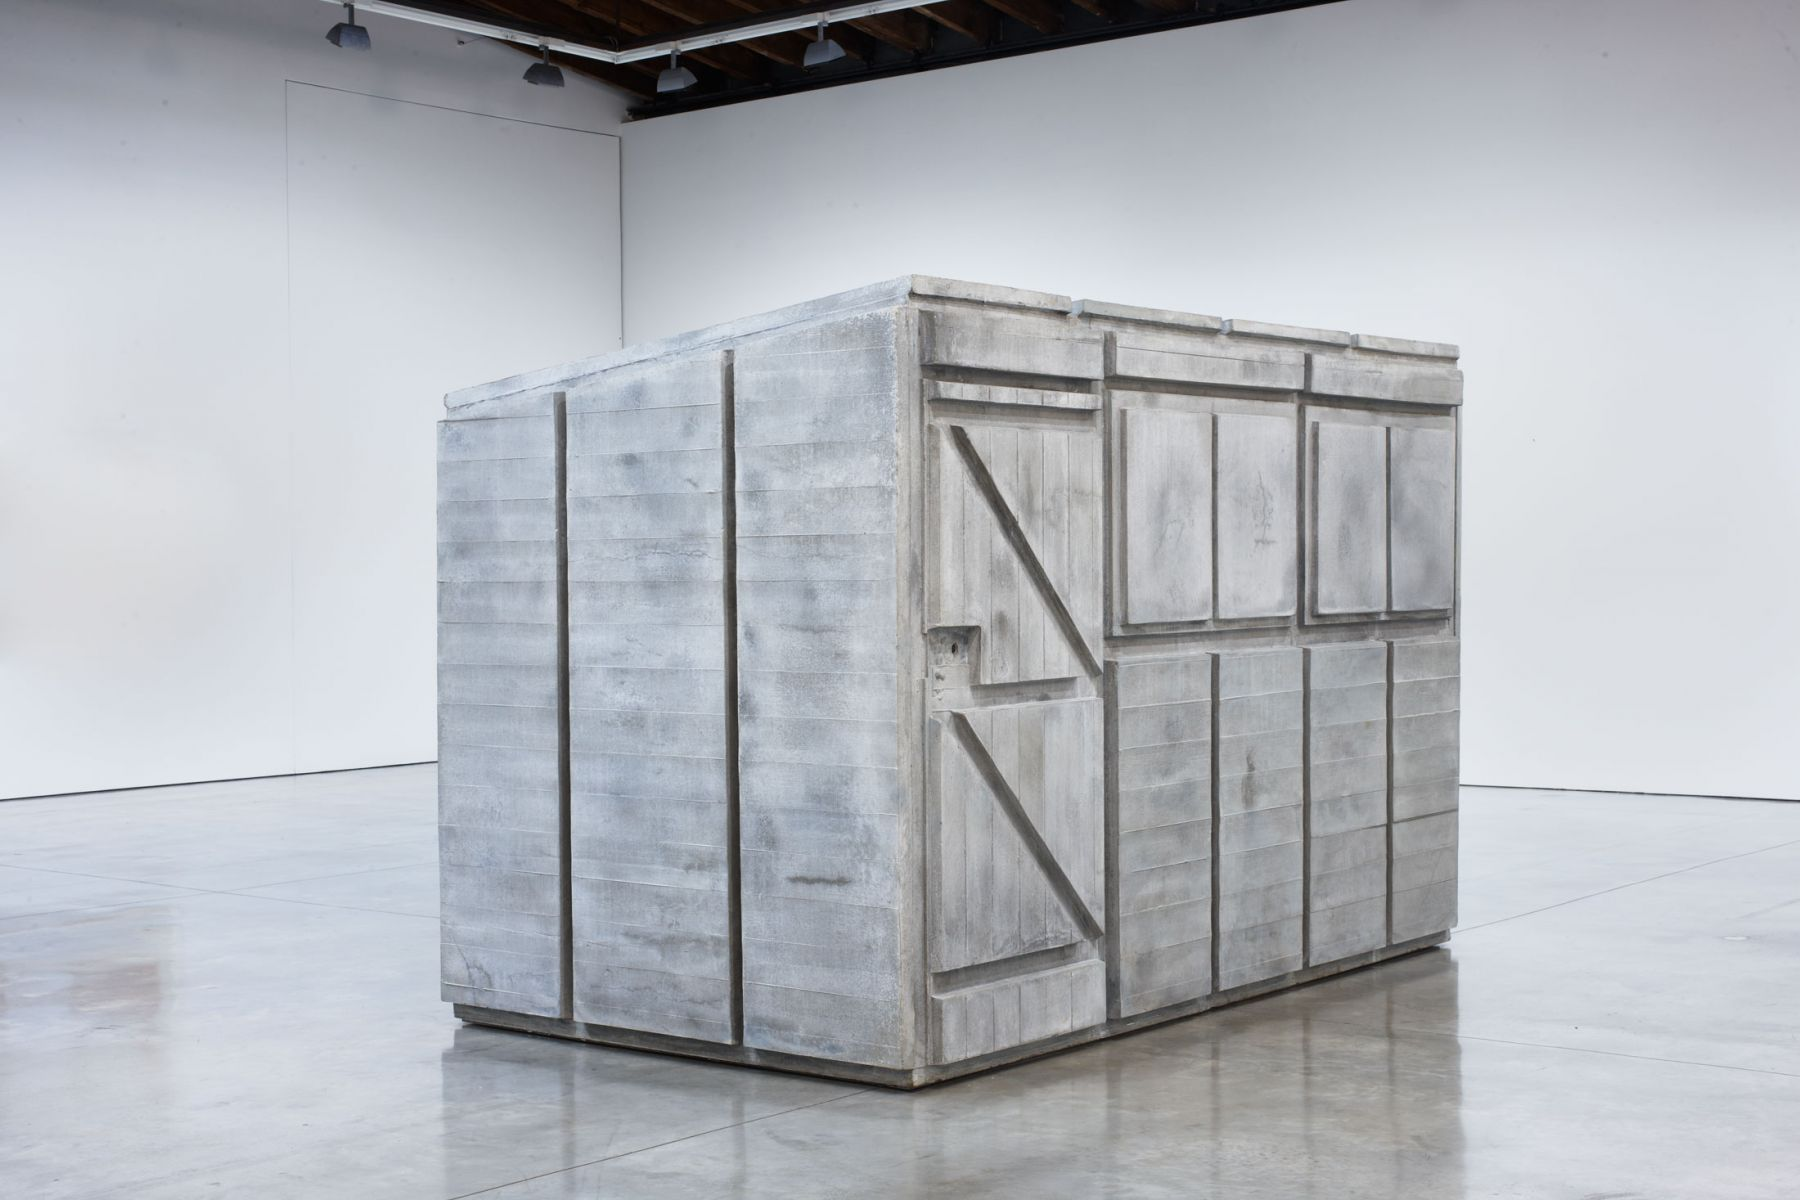 Rachel Whiteread Detached III, 2012